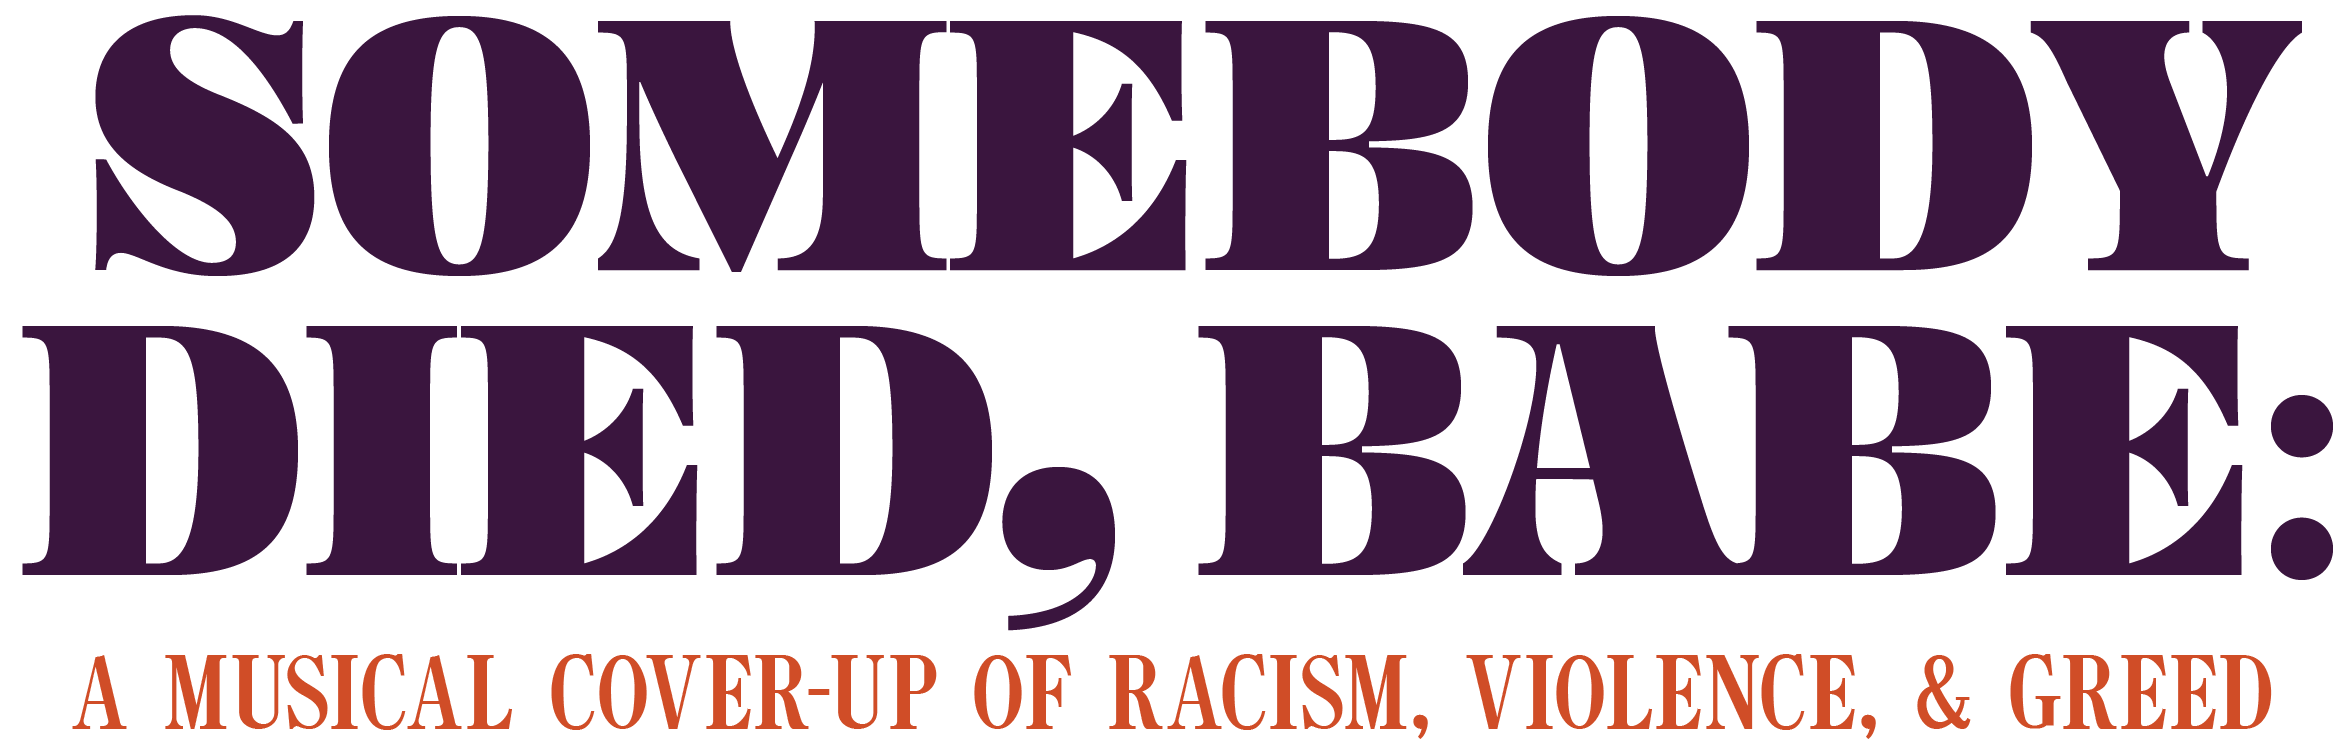 Somebody Died Babe A Musical Cover Up Of Racism Violence And Greed The Bitter Southerner